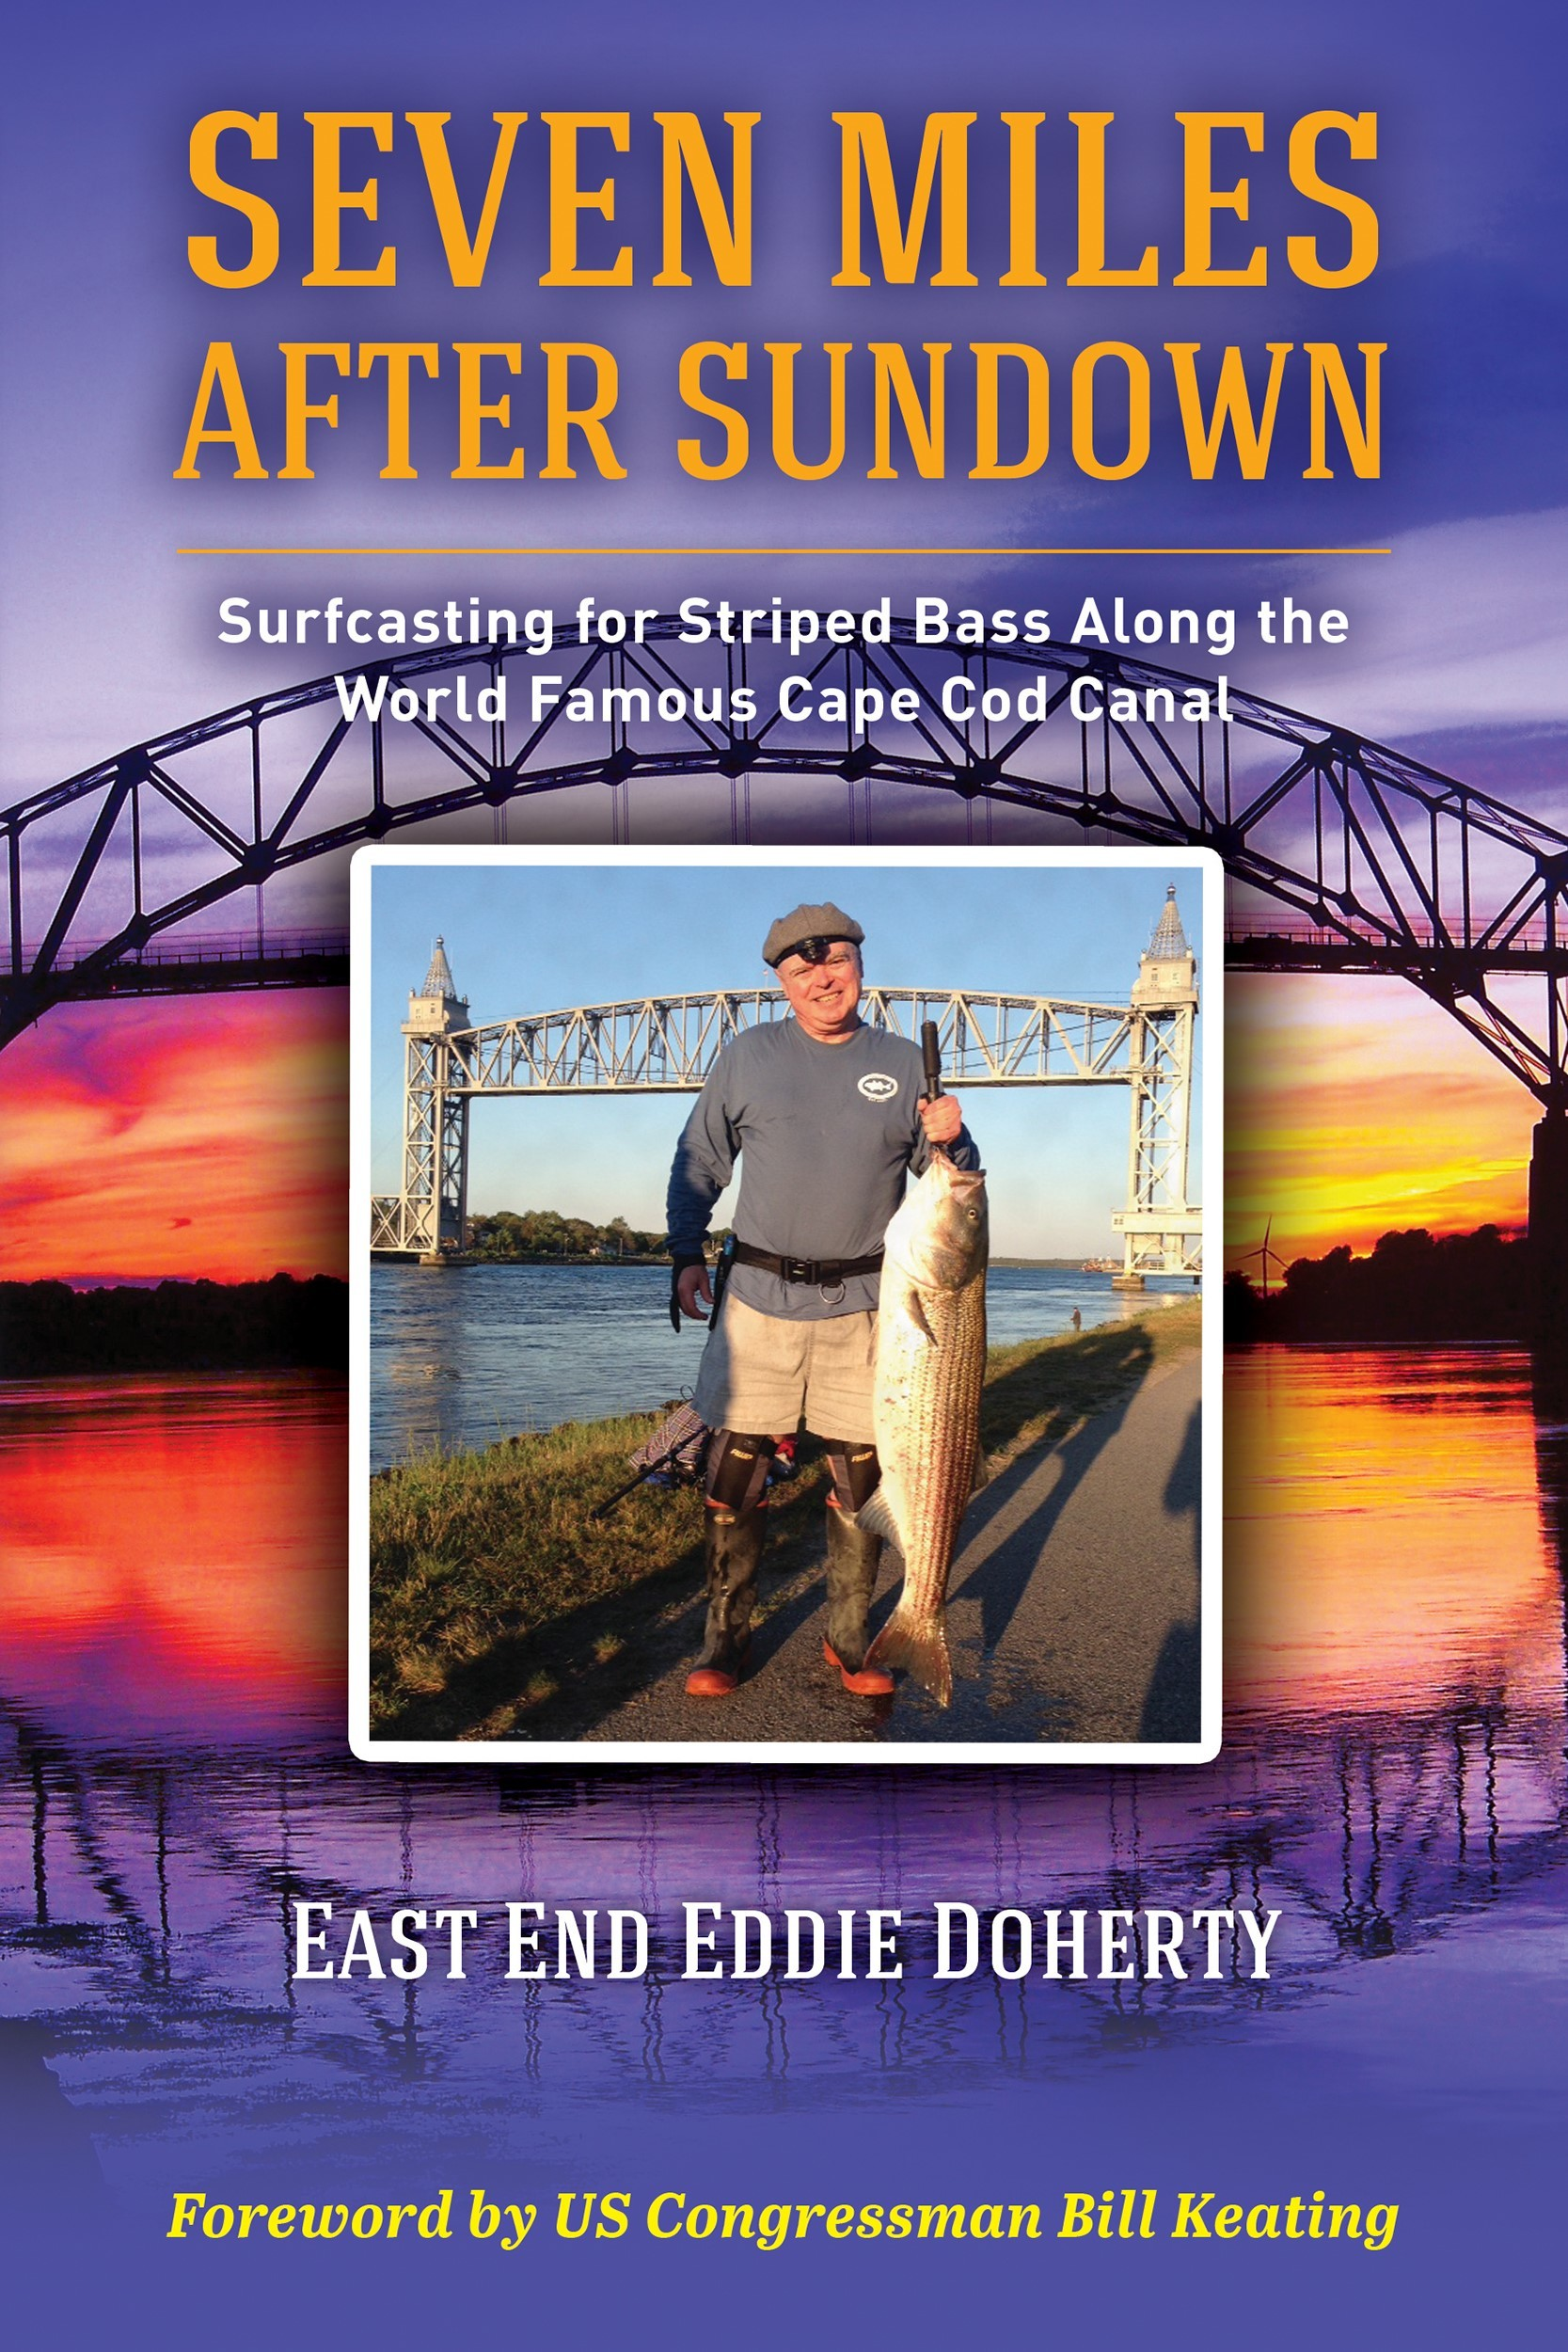 'Seven miles after sundown' by East End Eddie Doherty of Mattapoisett. This new book is about surfcasting for striped bass along the Cape Cod Canal. Soft cover available for $16.95 on Amazon.